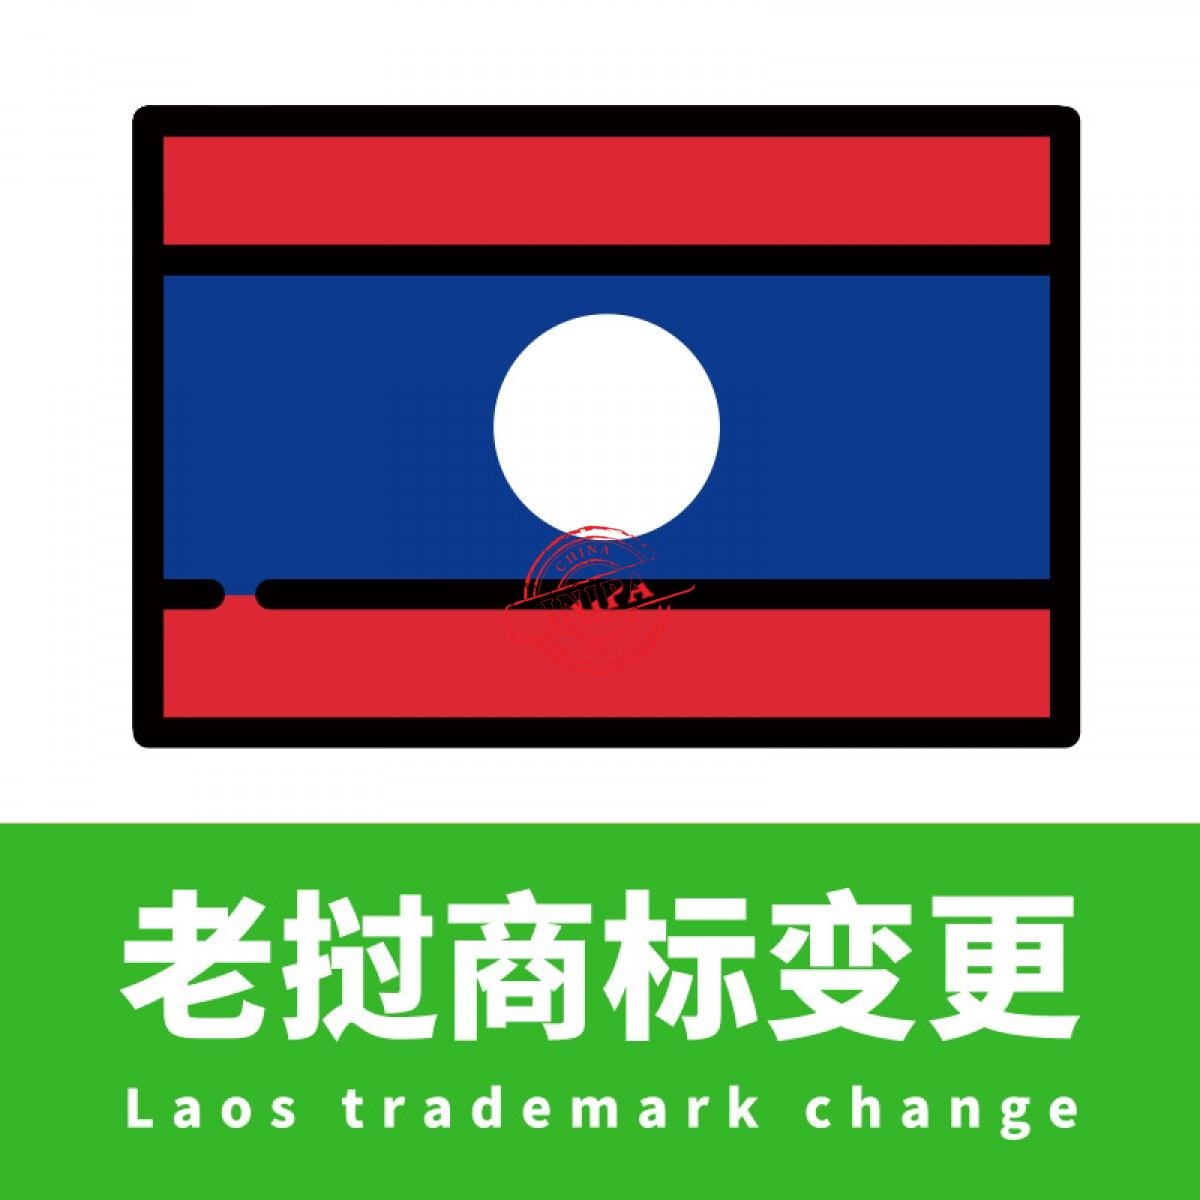 老挝商标变更/Laos trademark change